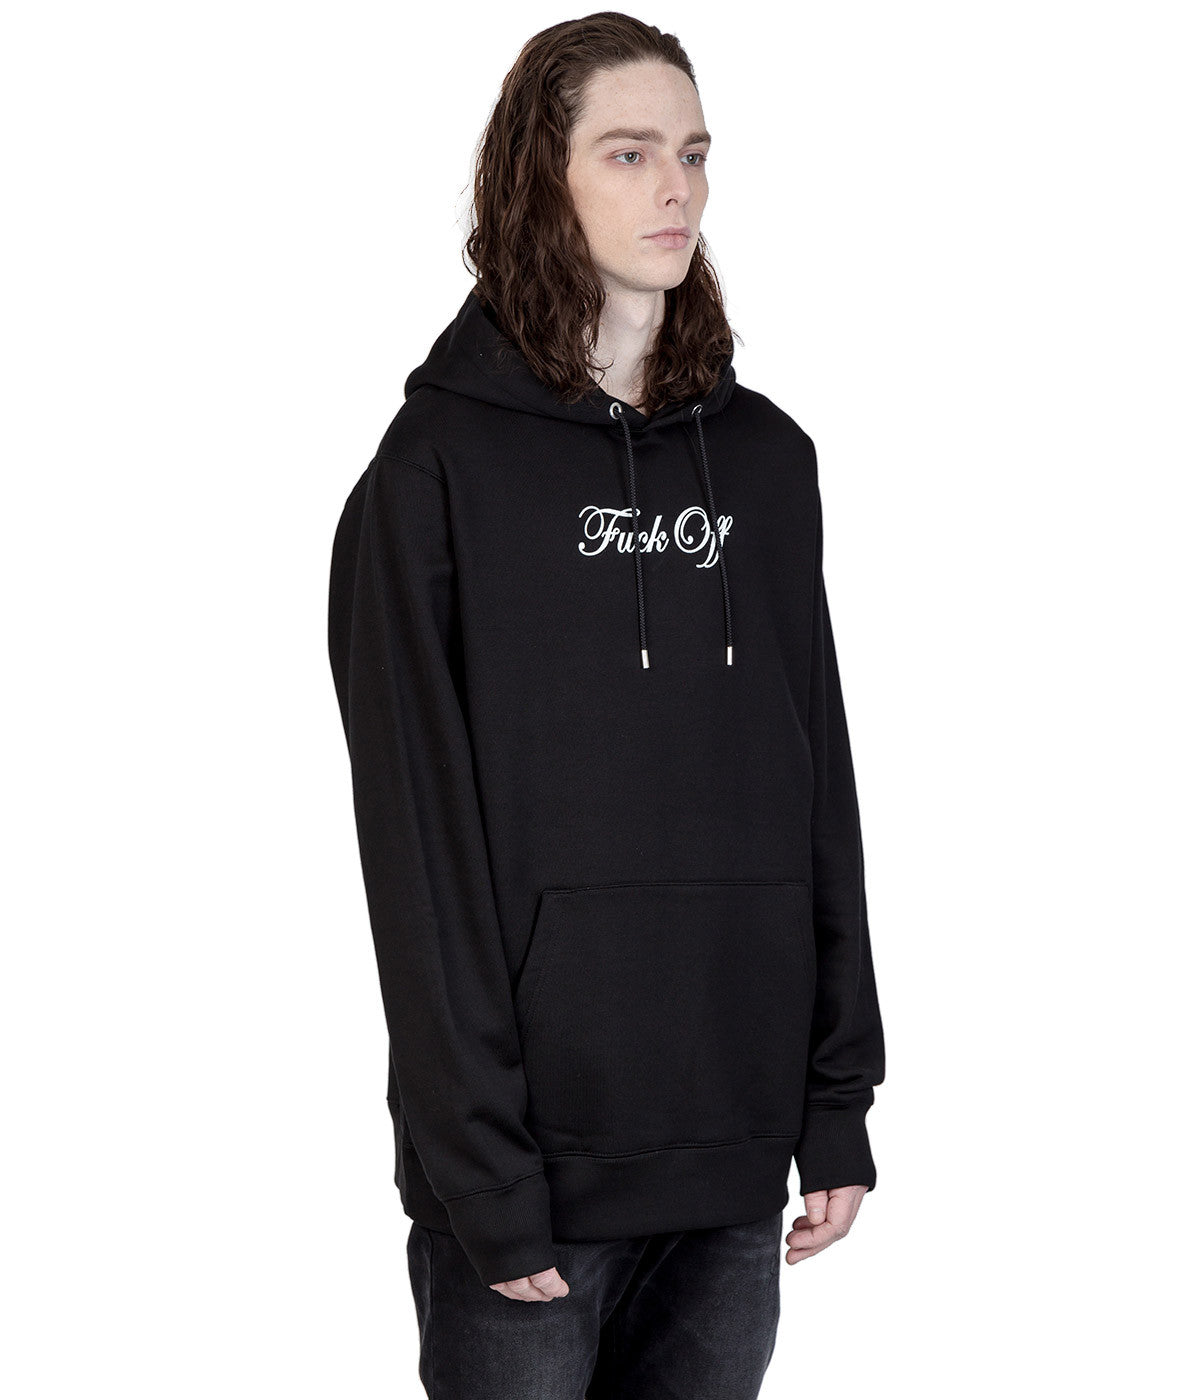 Black Graphic 'Fuck Off' Hoodie